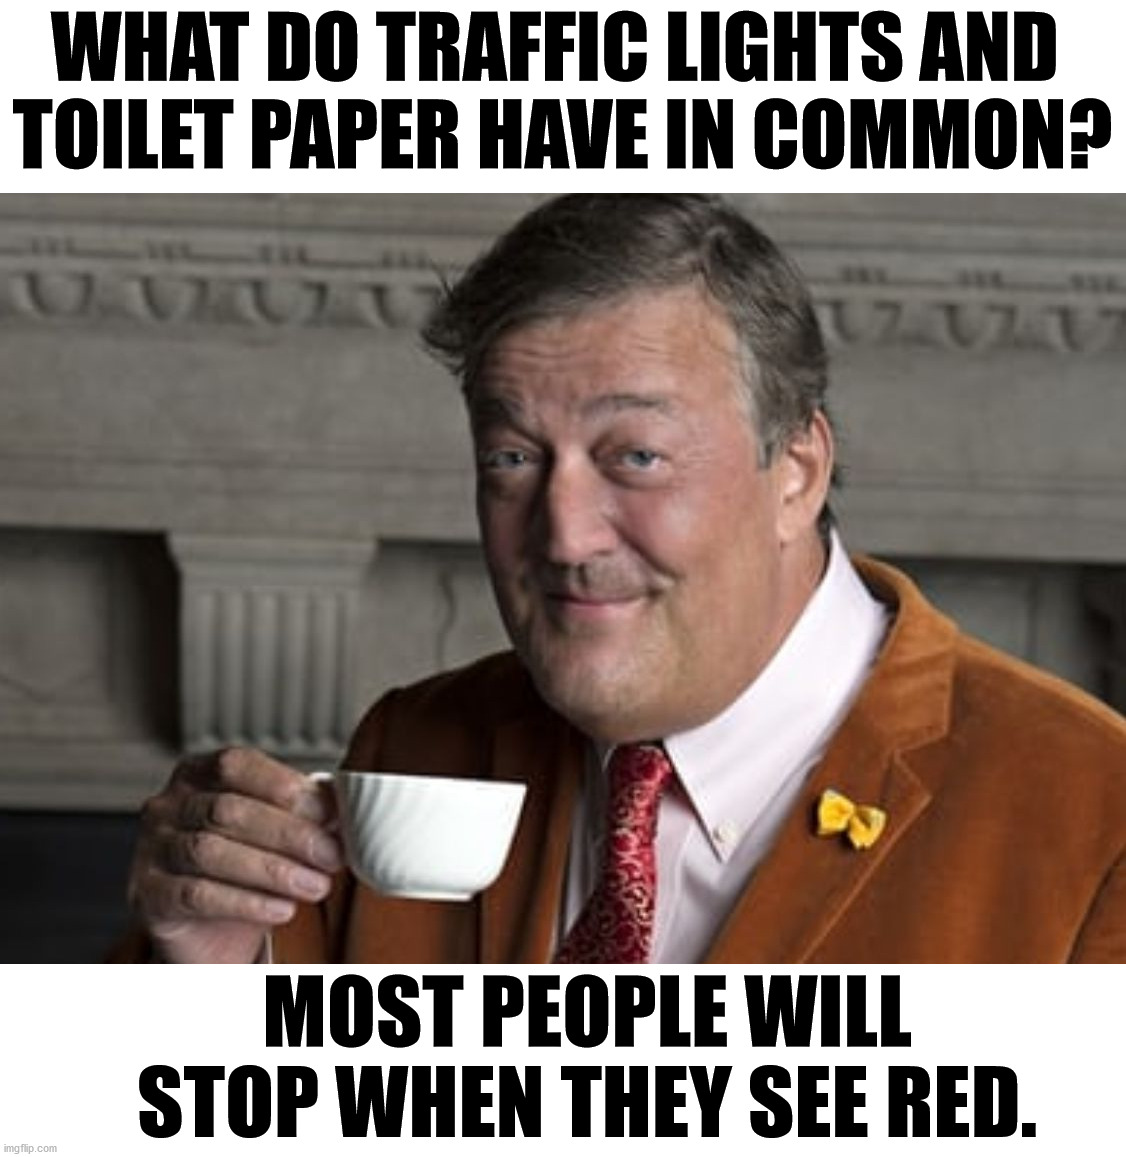 This meme makes me see red. |  WHAT DO TRAFFIC LIGHTS AND  TOILET PAPER HAVE IN COMMON? MOST PEOPLE WILL STOP WHEN THEY SEE RED. | image tagged in did you know,red,toilet paper,traffic light | made w/ Imgflip meme maker